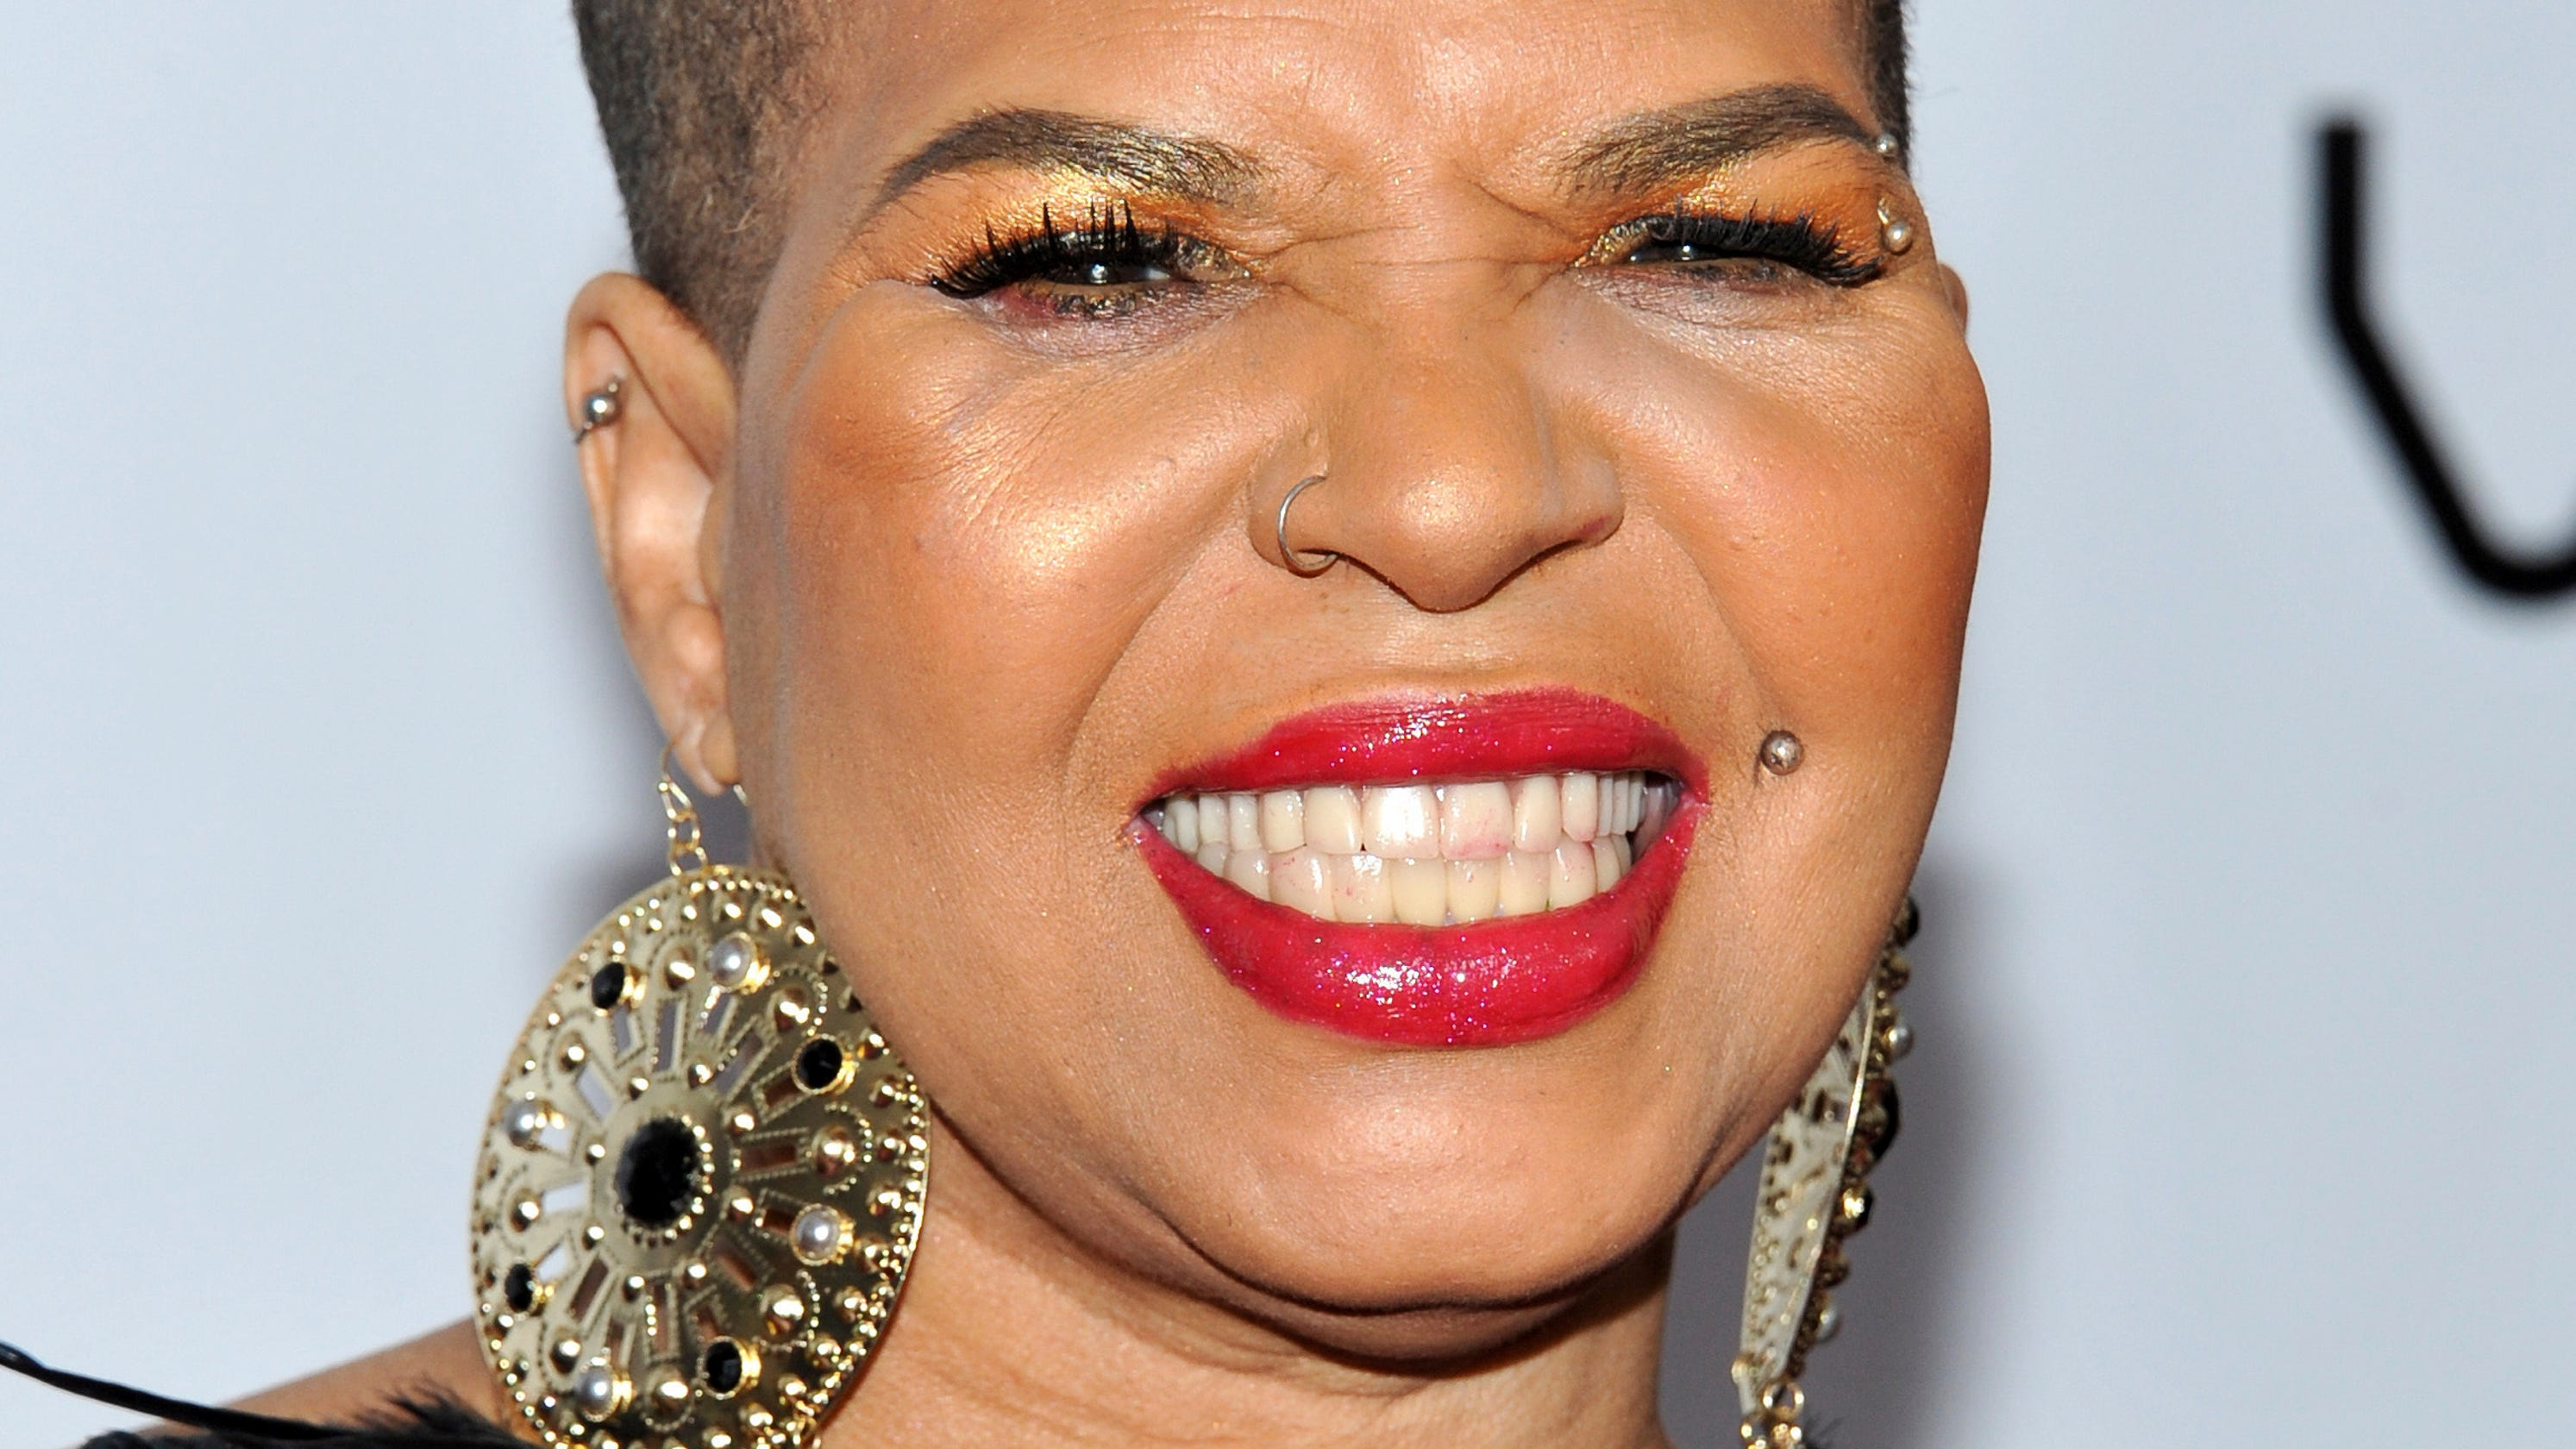 Ntozake Shange Who Wrote Influential For Colored Girls Has Died